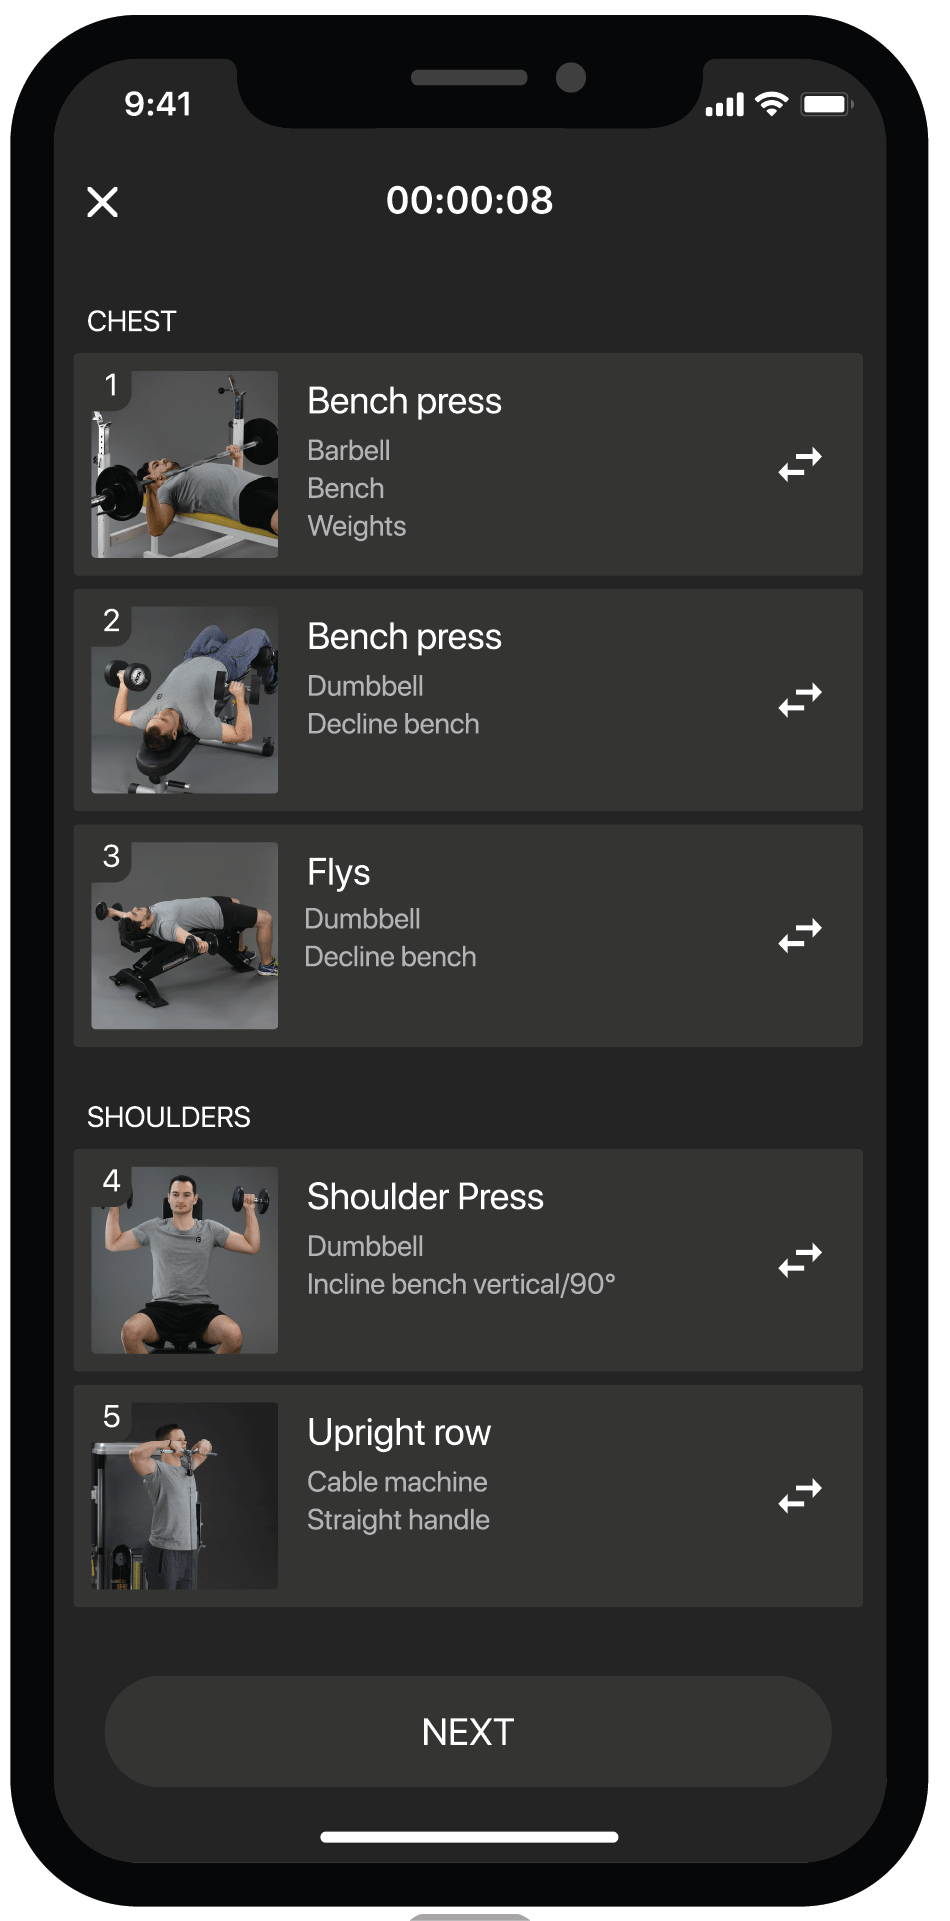 BestFit fitness app screen, personal workout plan, exercises bench press, flys, shoulder press, upright row